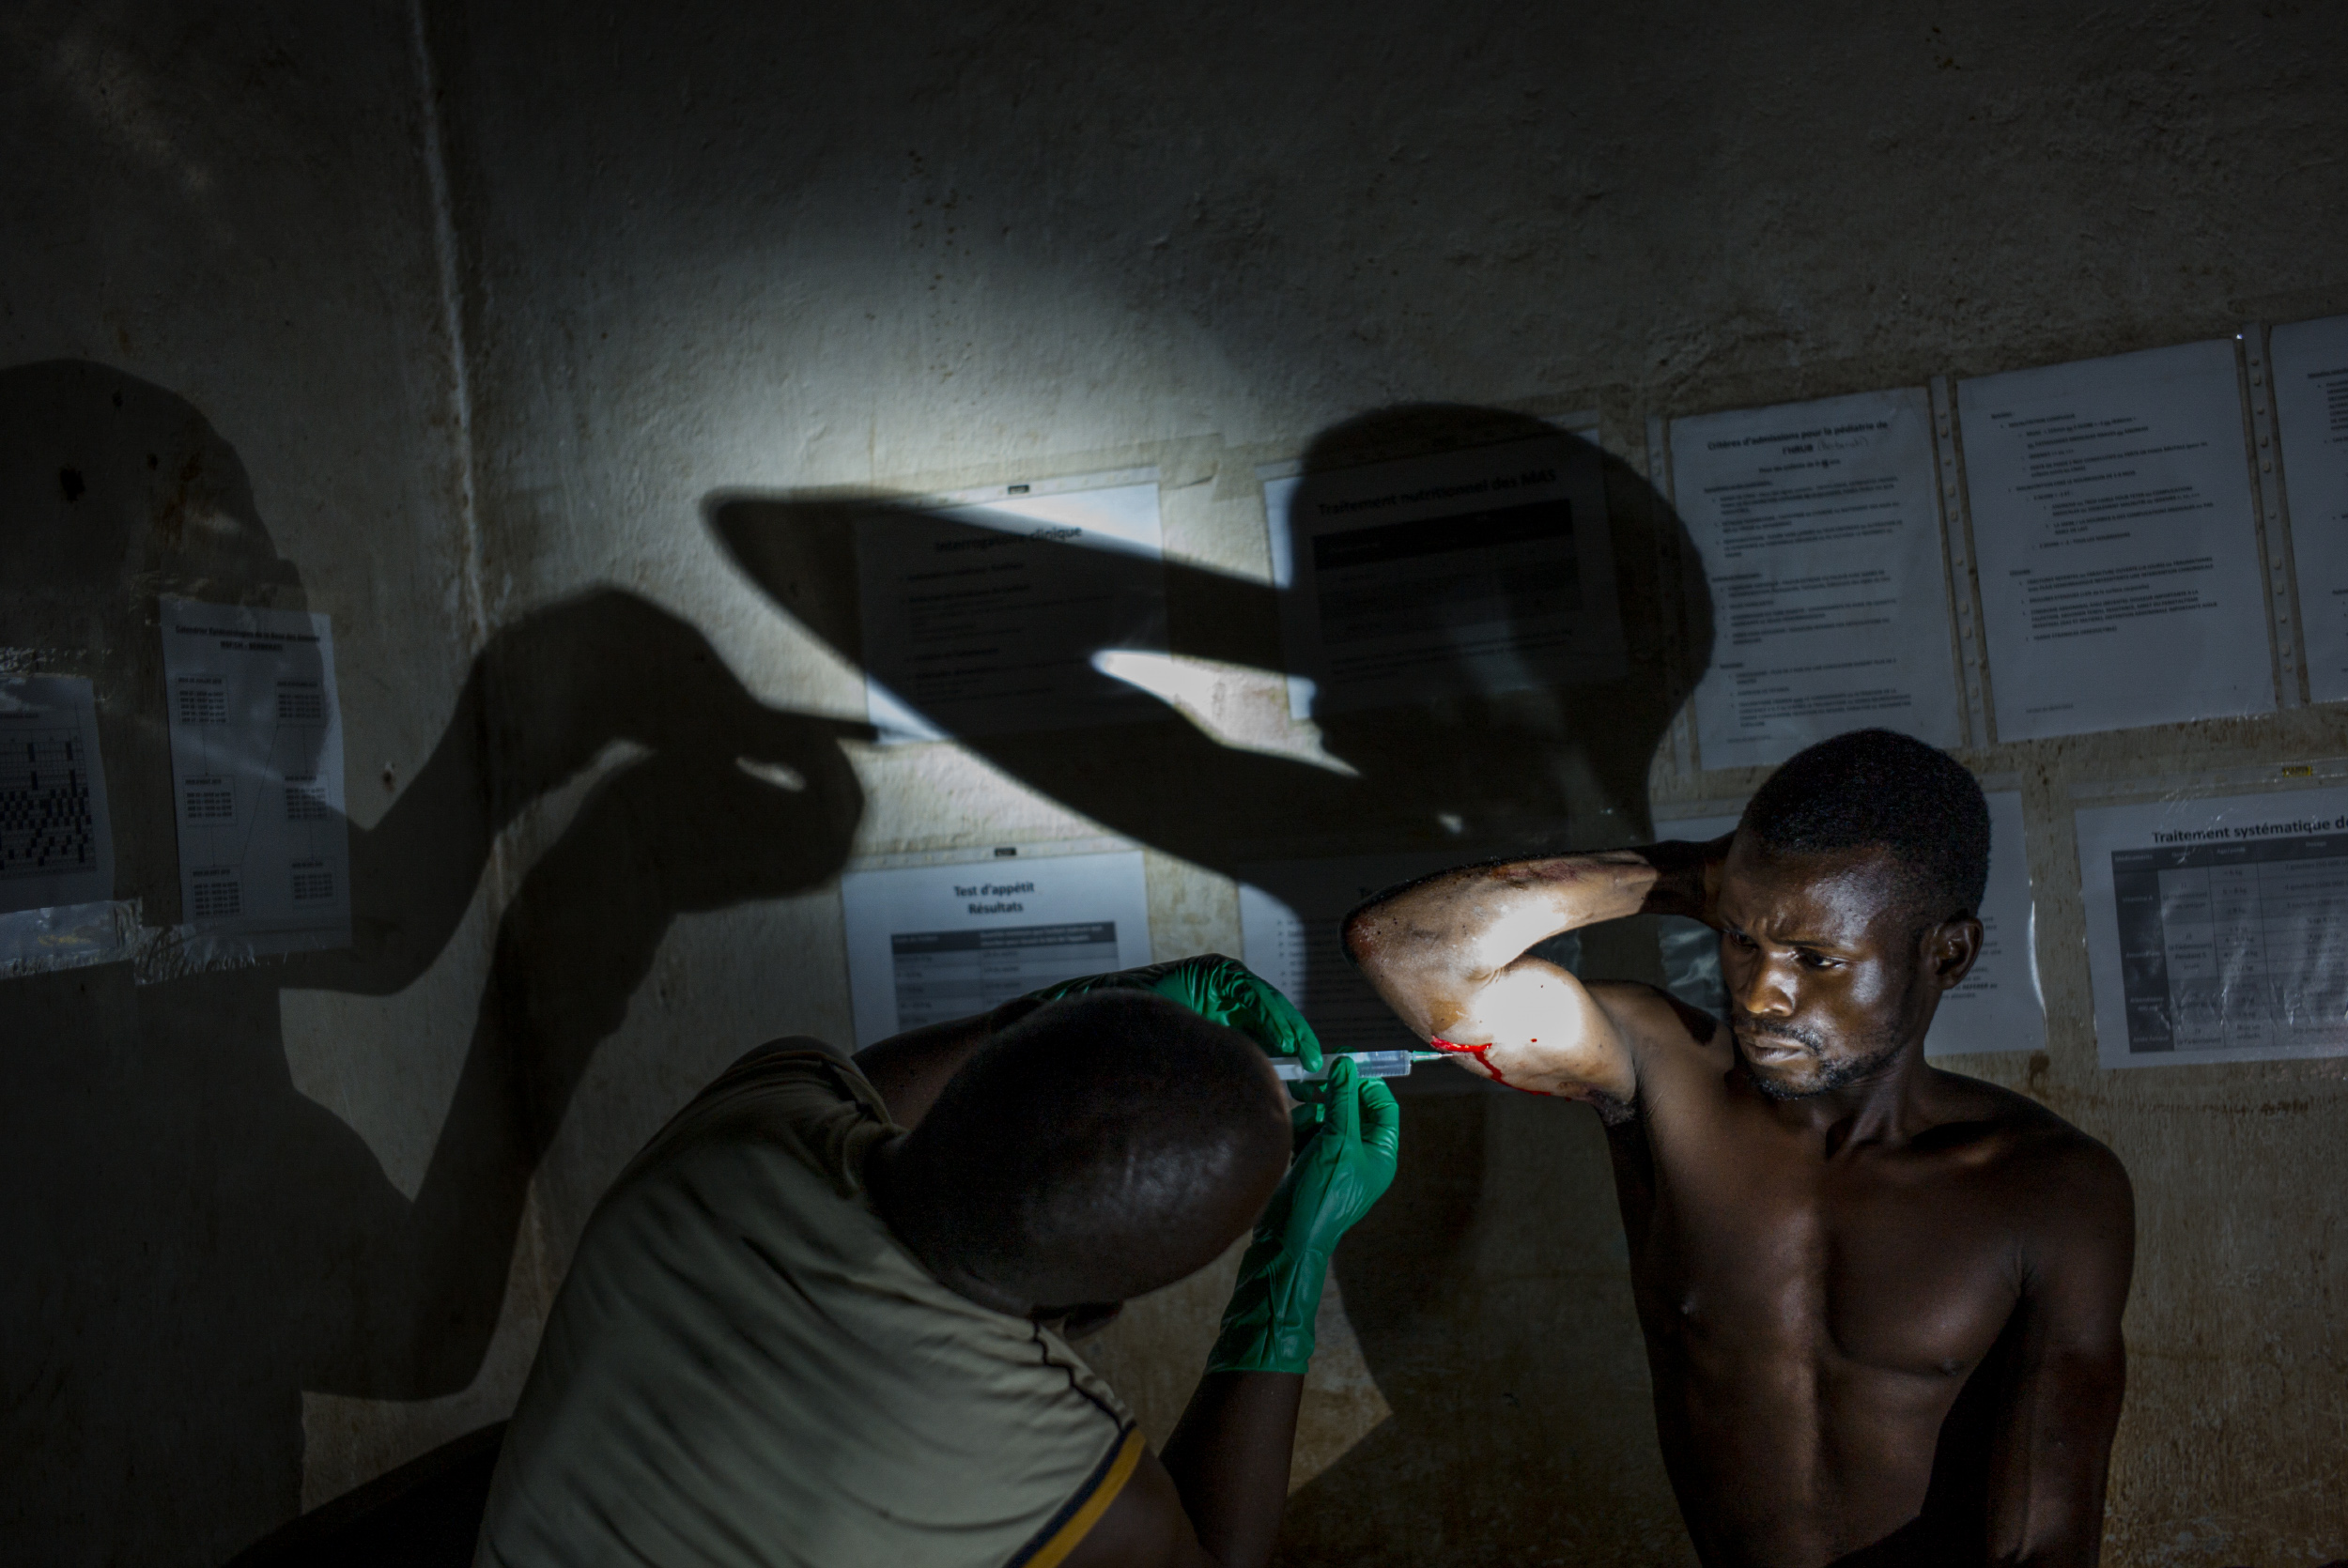 A man accused of sorcery is treated by a nurse from Doctors Without Borders at night without electricity in Amada Gaza, Central African Republic, Oct. 14, 2015.